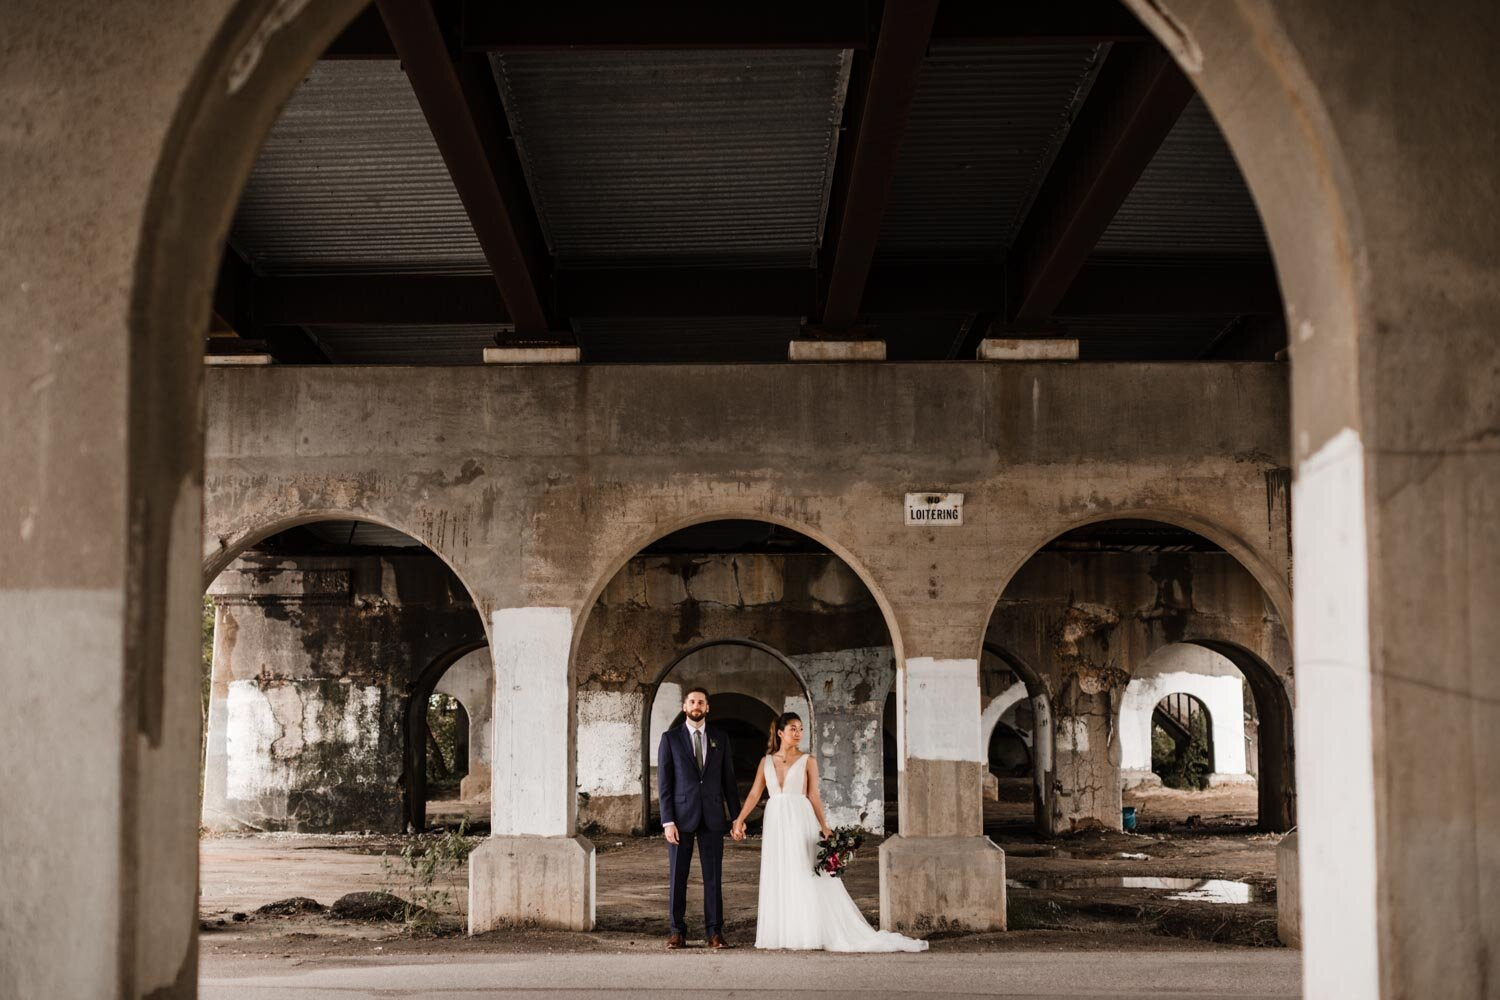 Mt Washington Mill Dye House industrial Baltimore wedding by Barbara O Photography-143.jpg